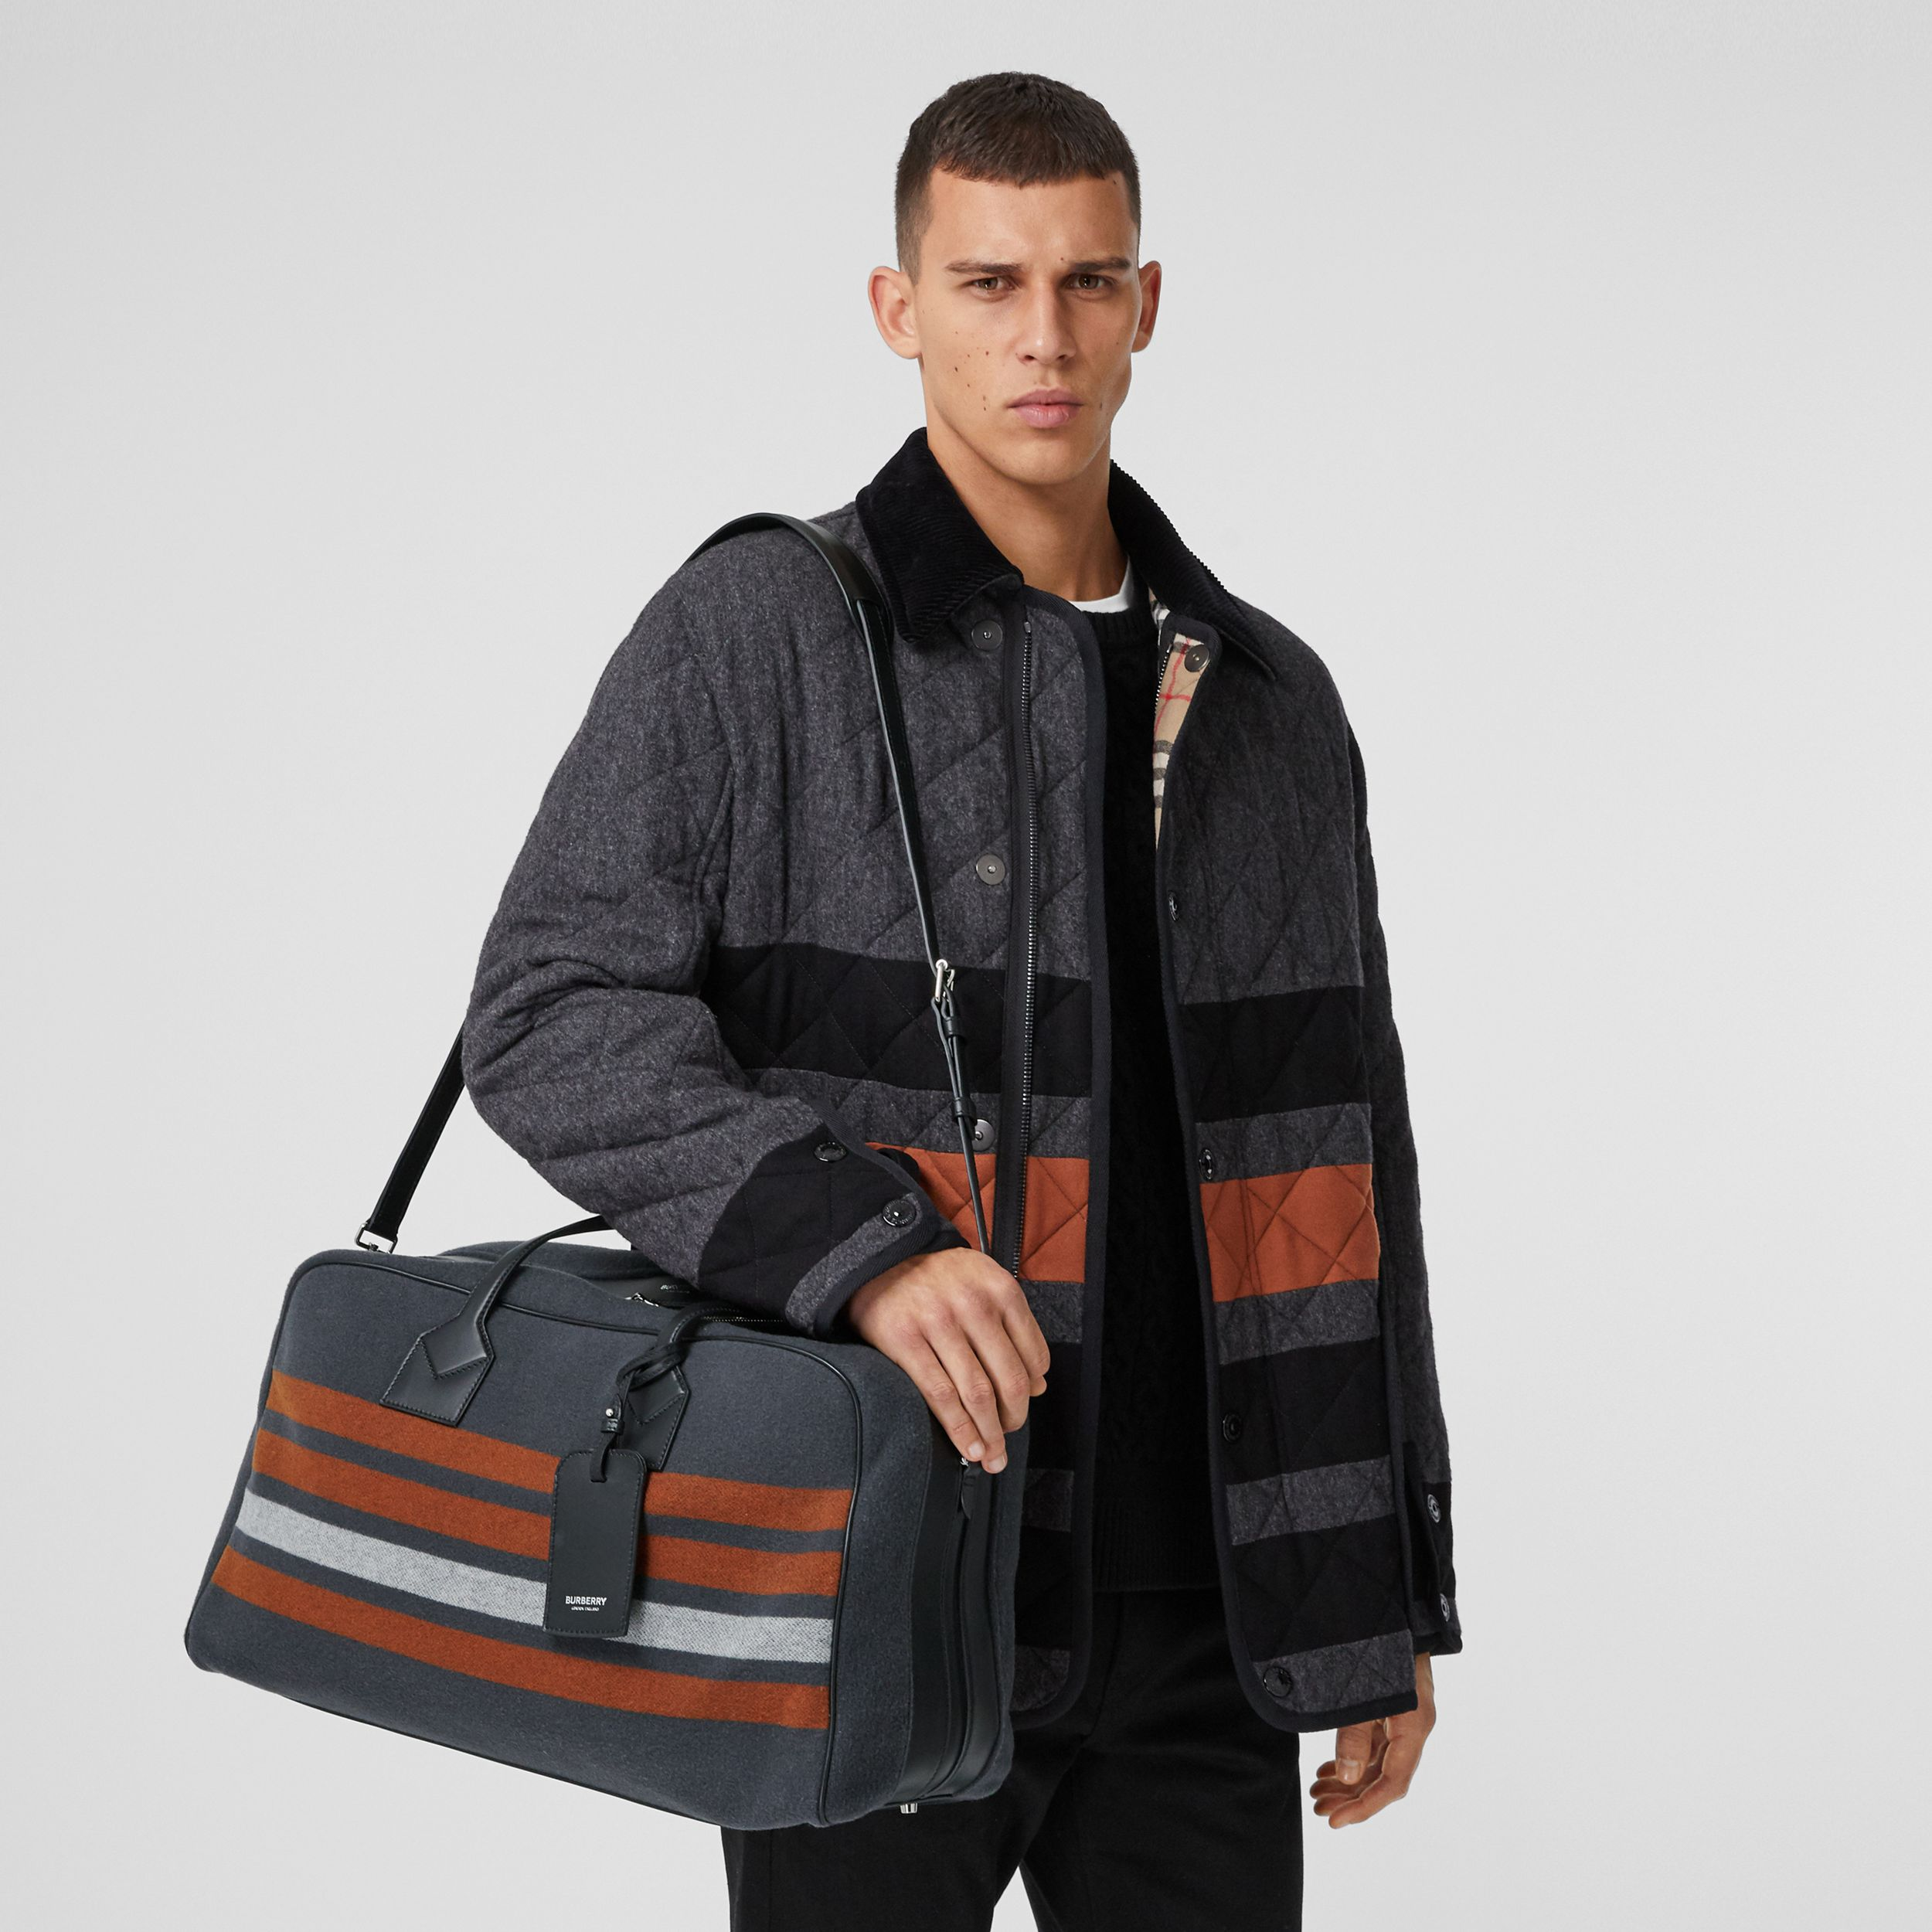 Striped Wool and Leather Cube Holdall in Mid Grey - Men | Burberry Hong Kong S.A.R. - 3